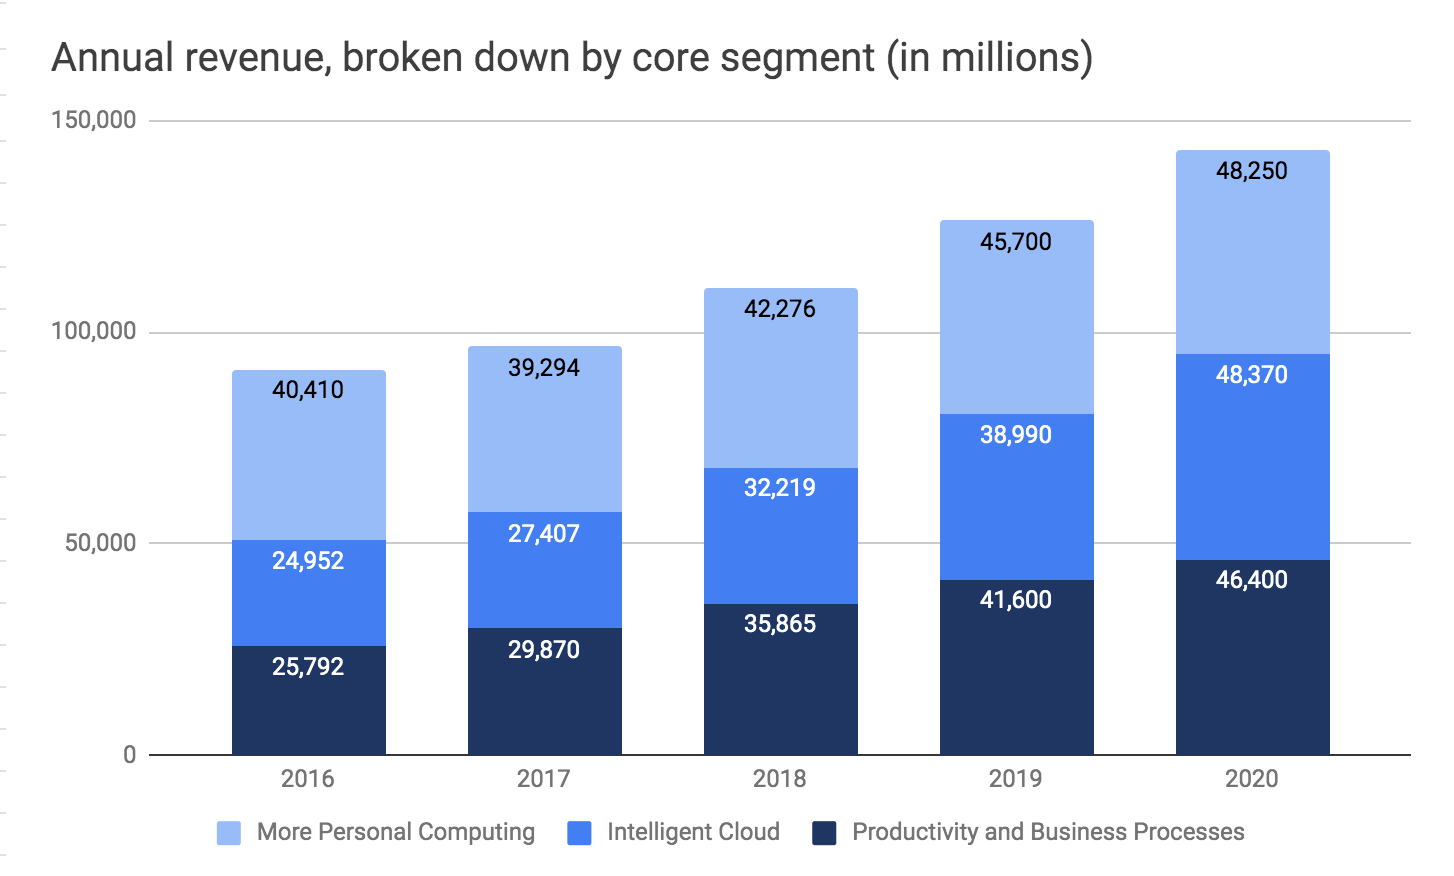 Microsoft annual revenues for 2016, 2017 and 2018 broken down by business unit